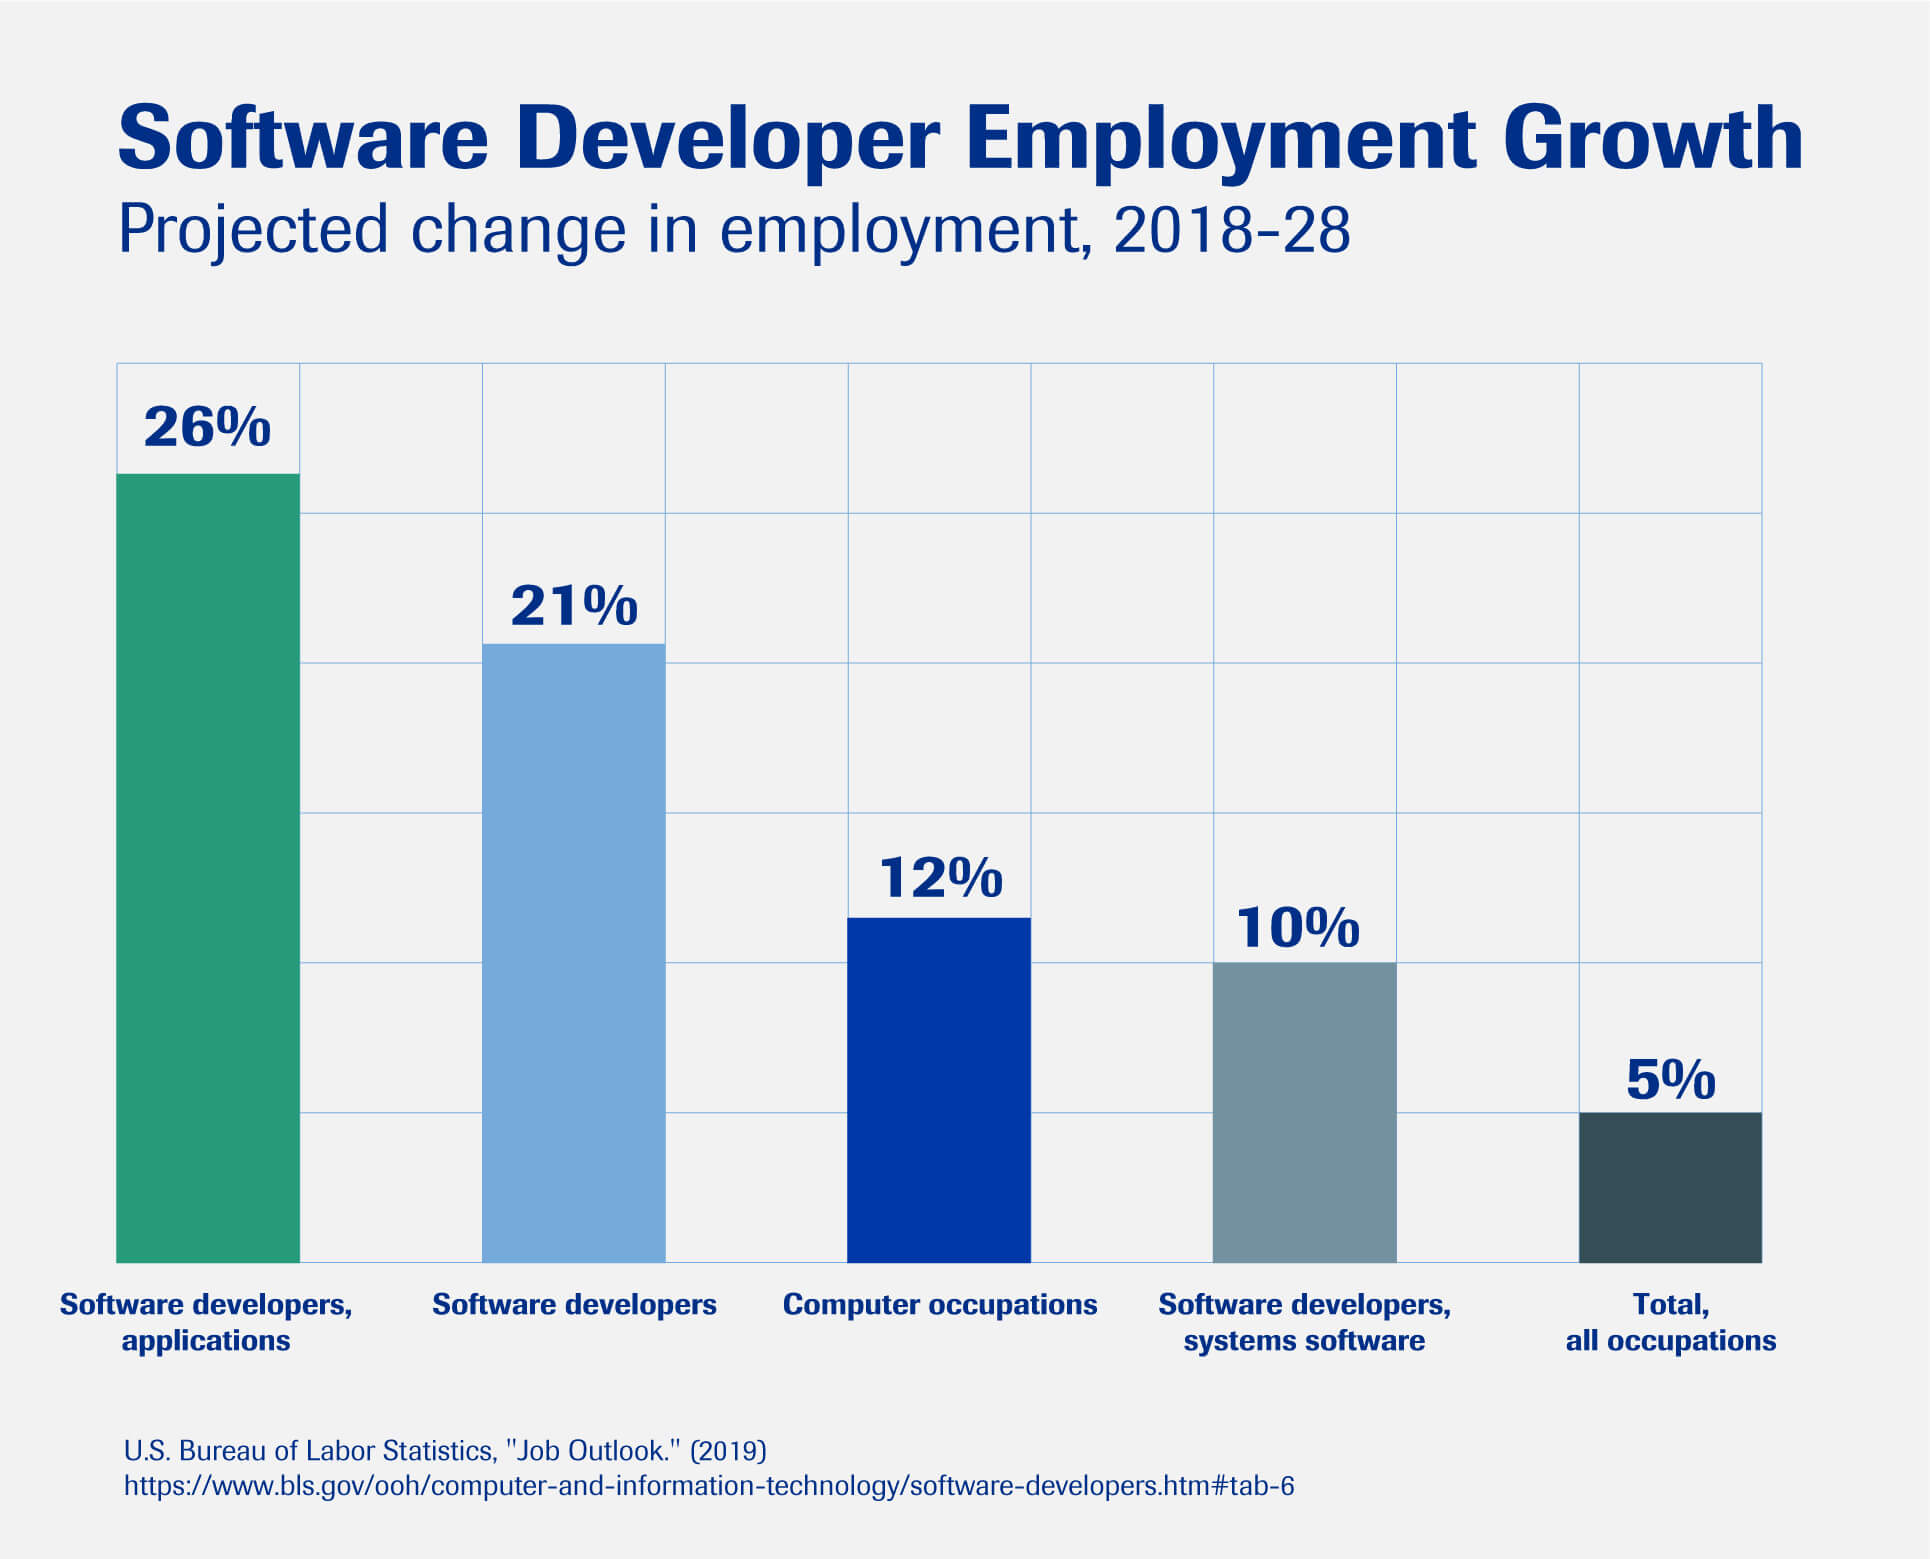 A chart showing the projected employment growth for software developers